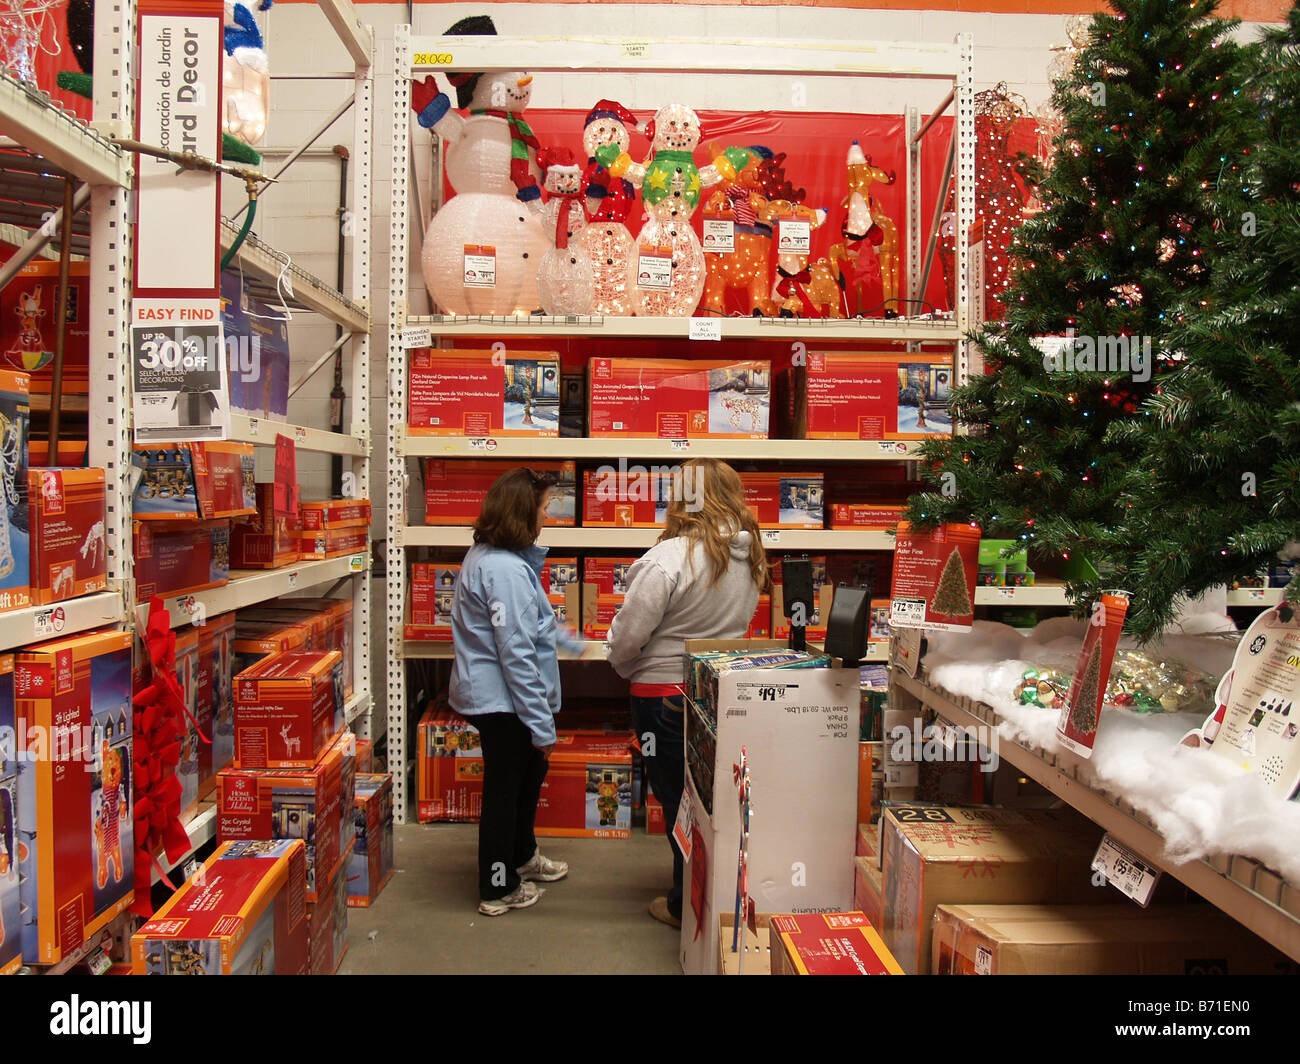 Shoppers Looking For Christmas Decorations At A Home Depot Store In New York,  USA